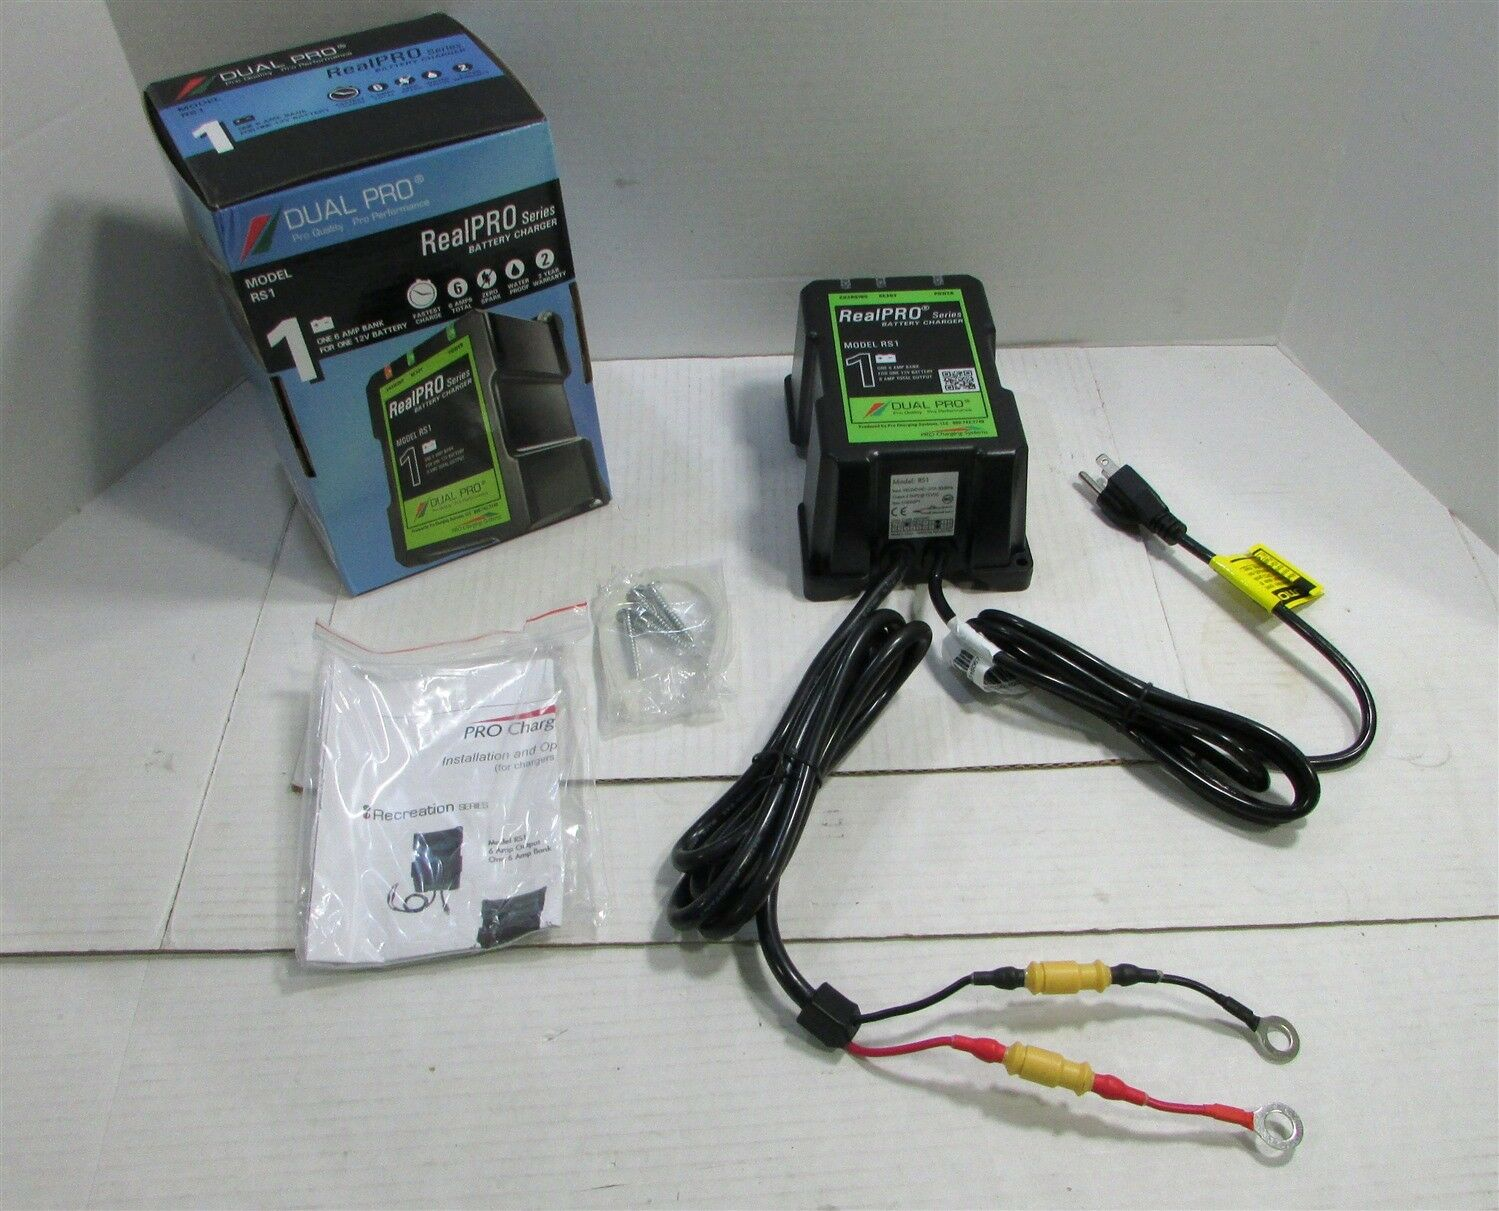 Details about Dual Pro Realpro Series 6a 1 Bank Battery Charger RS1